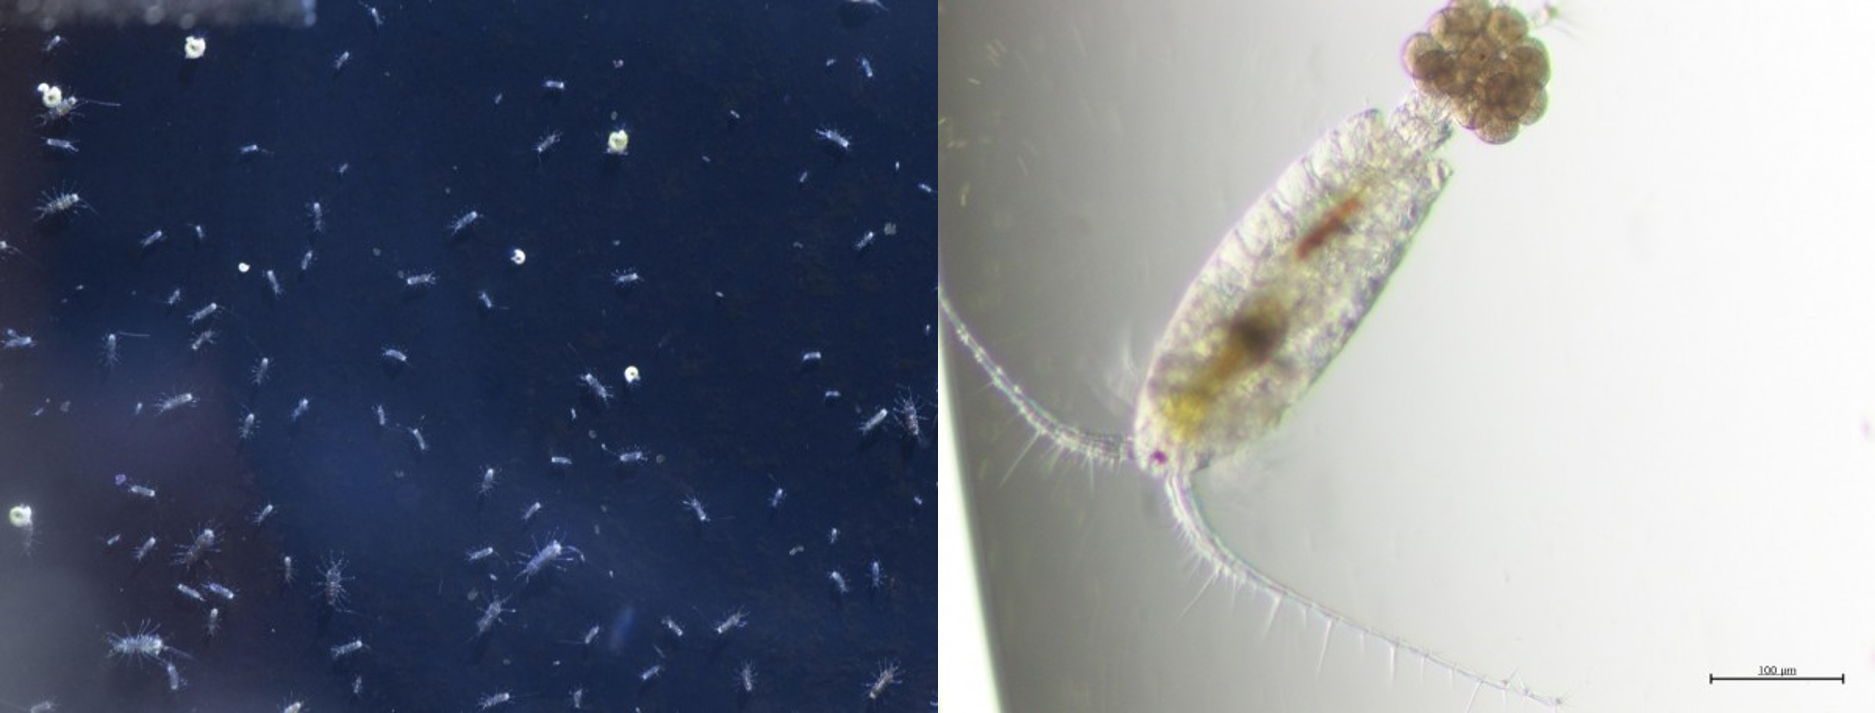 pictures of copepods